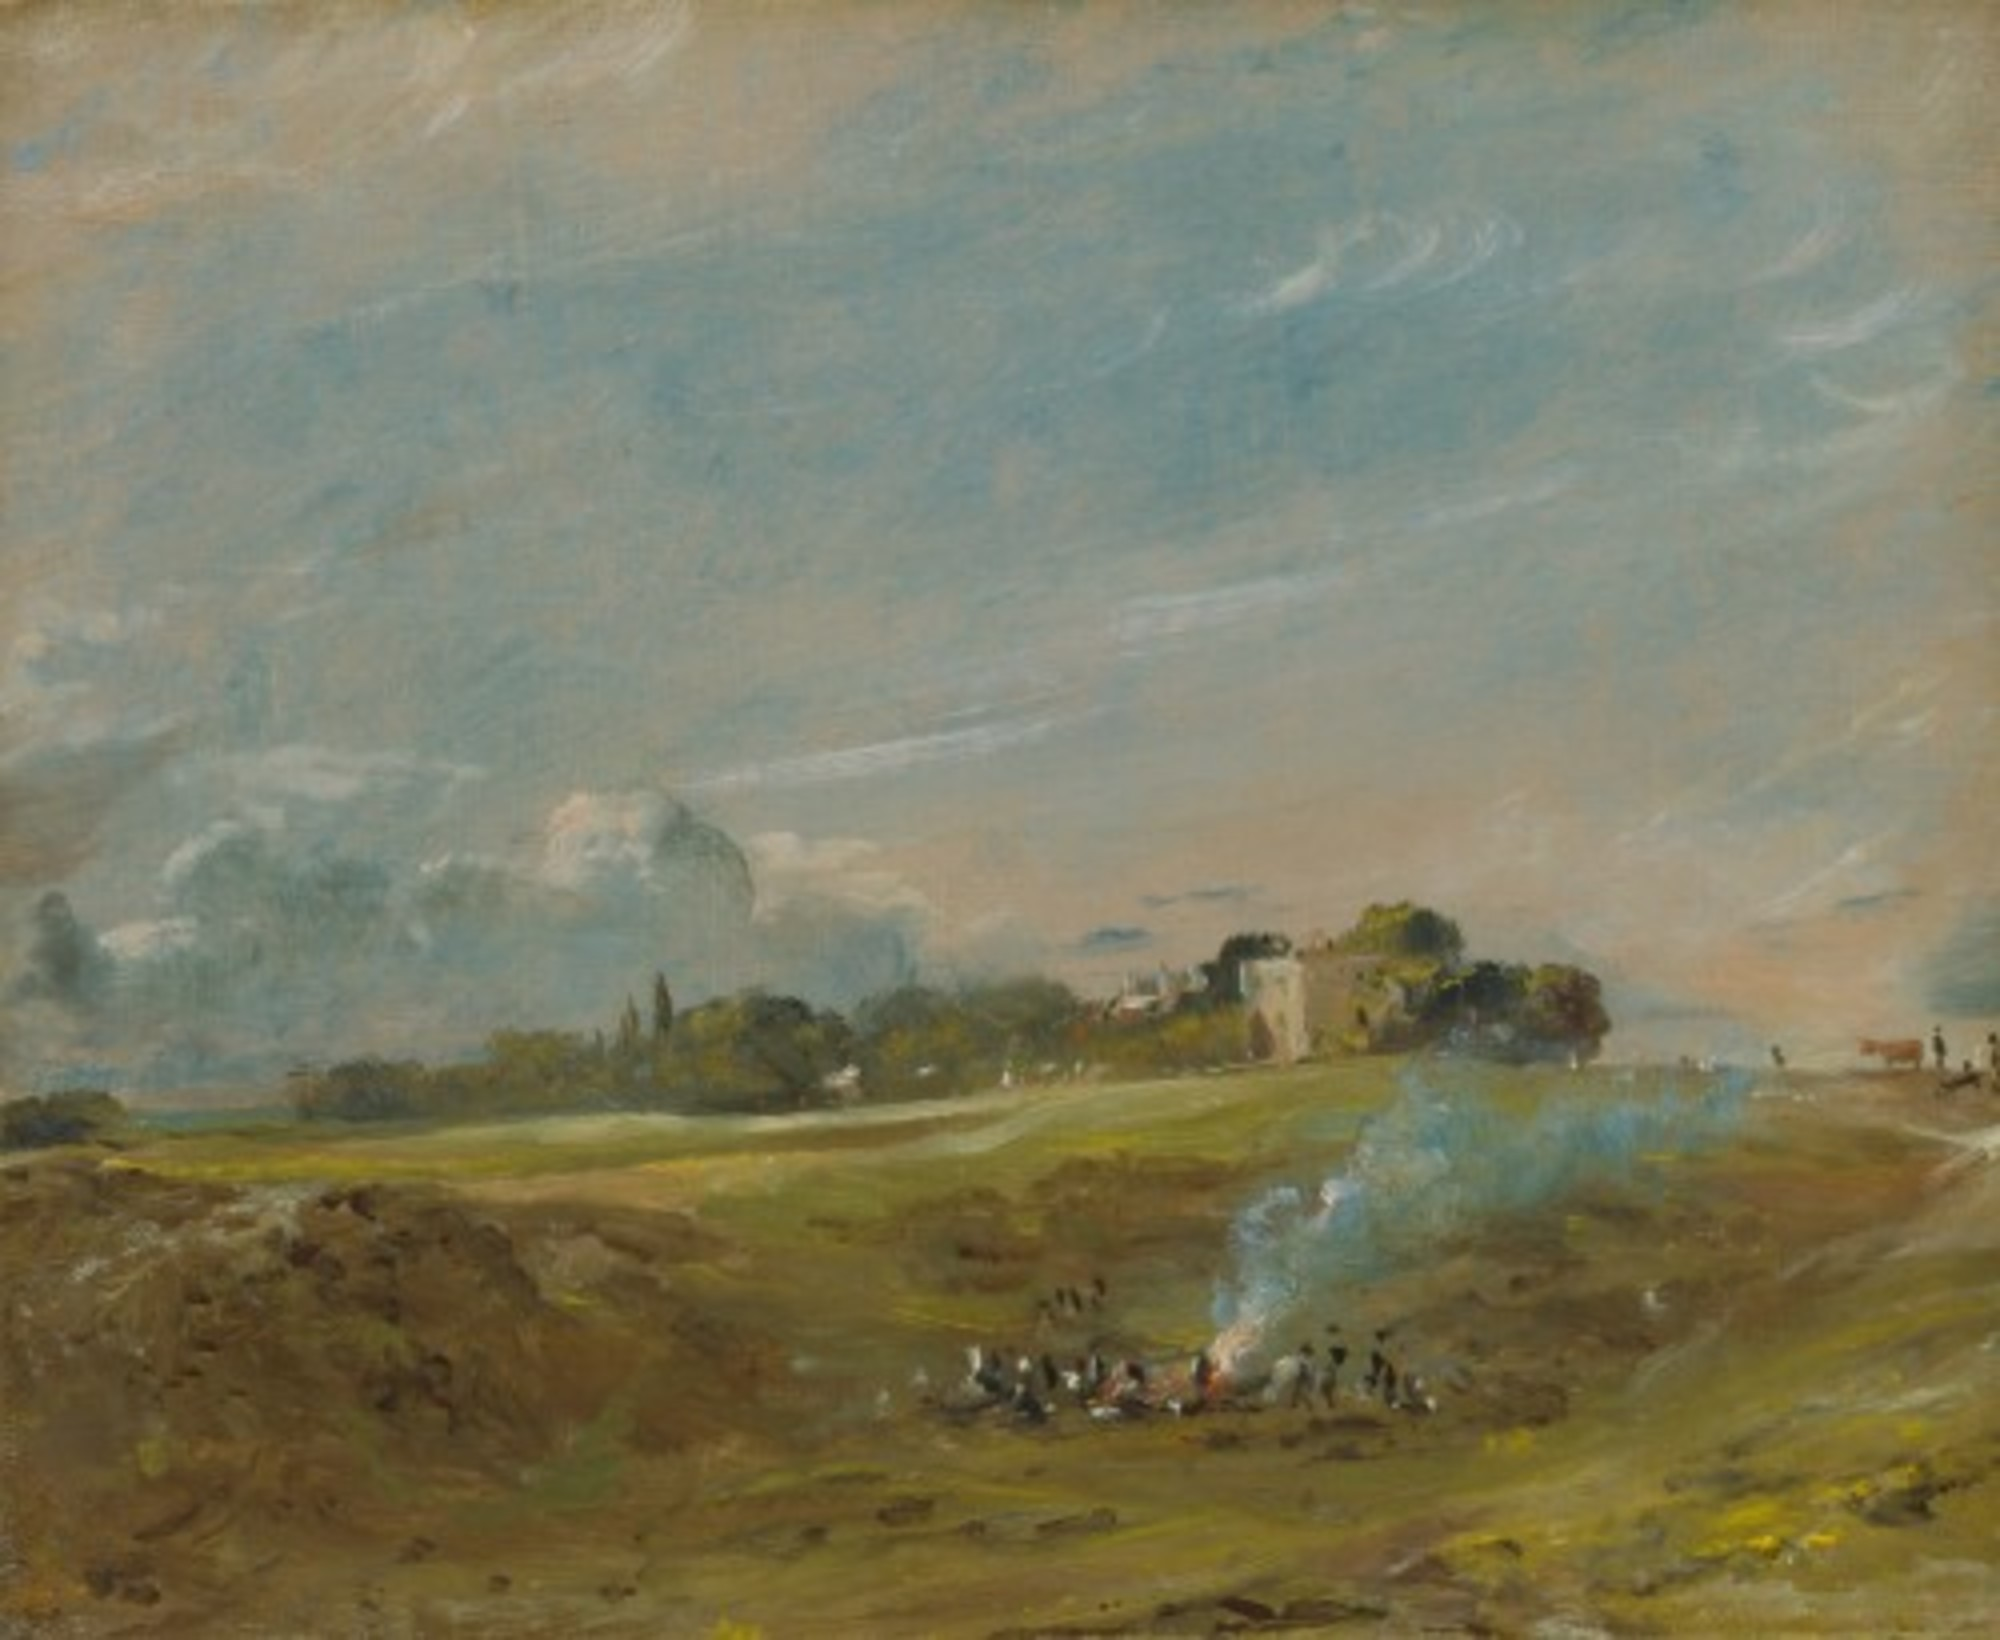 John-Constable---Hampstead-Heath-with-a-Bonfire---Google-Art-Project.jpg